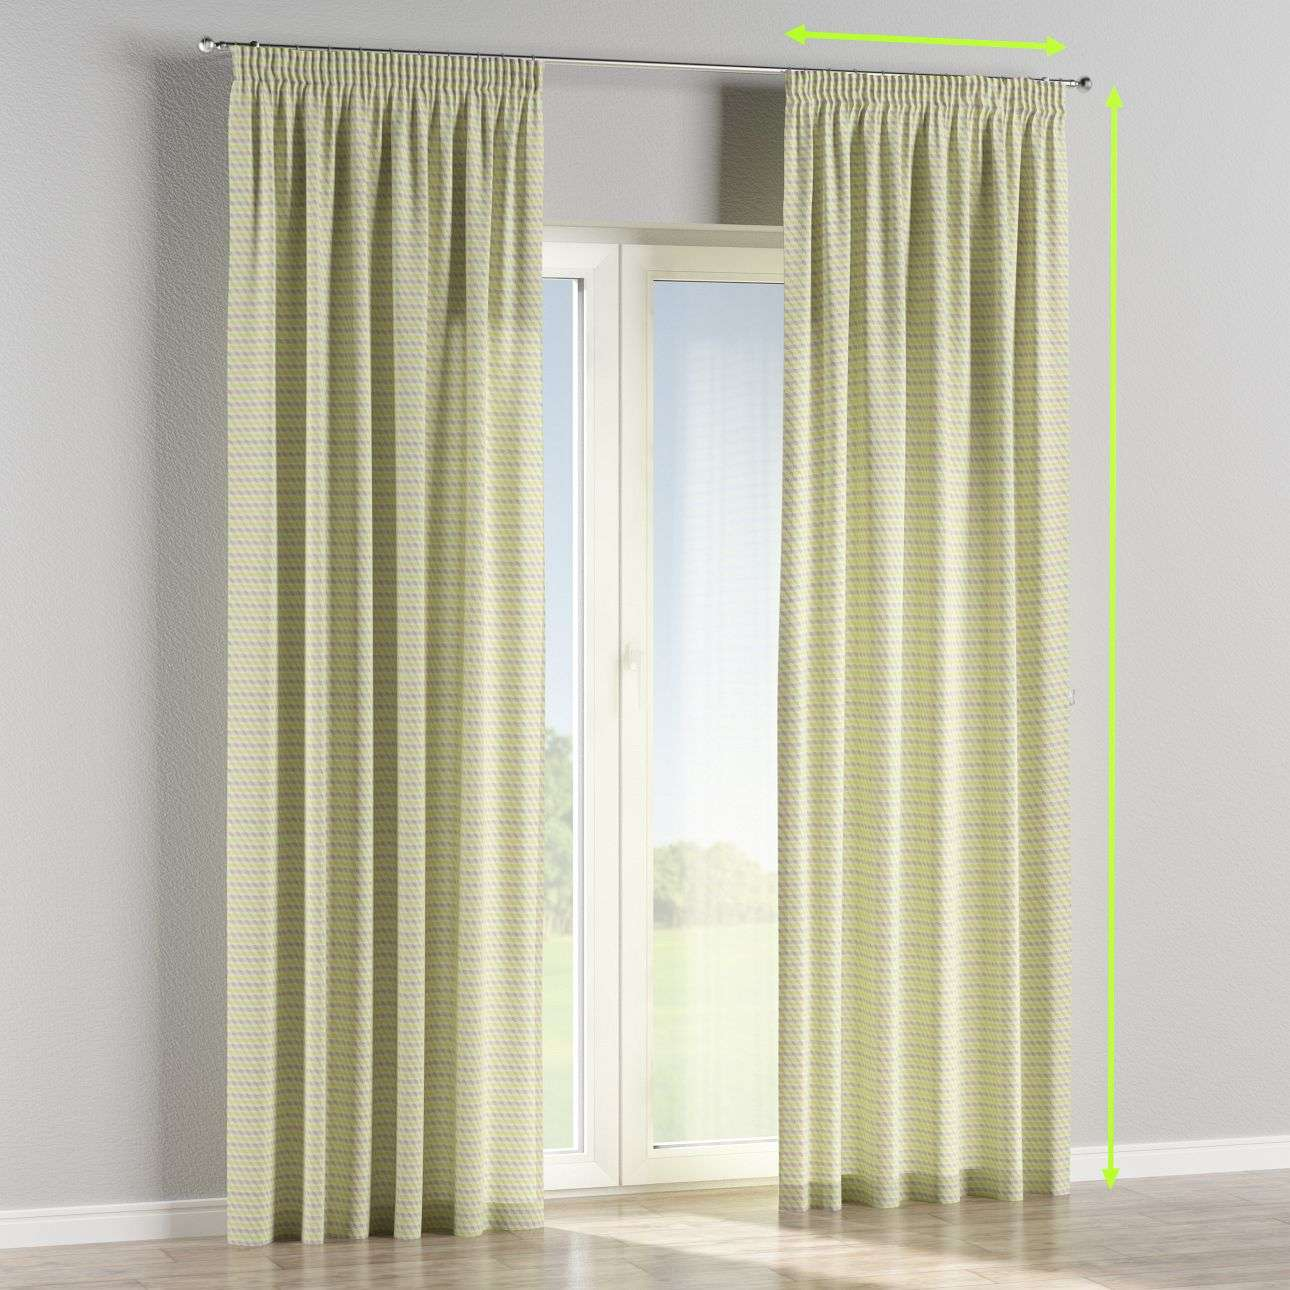 Pencil pleat curtains in collection SALE, fabric: 140-36